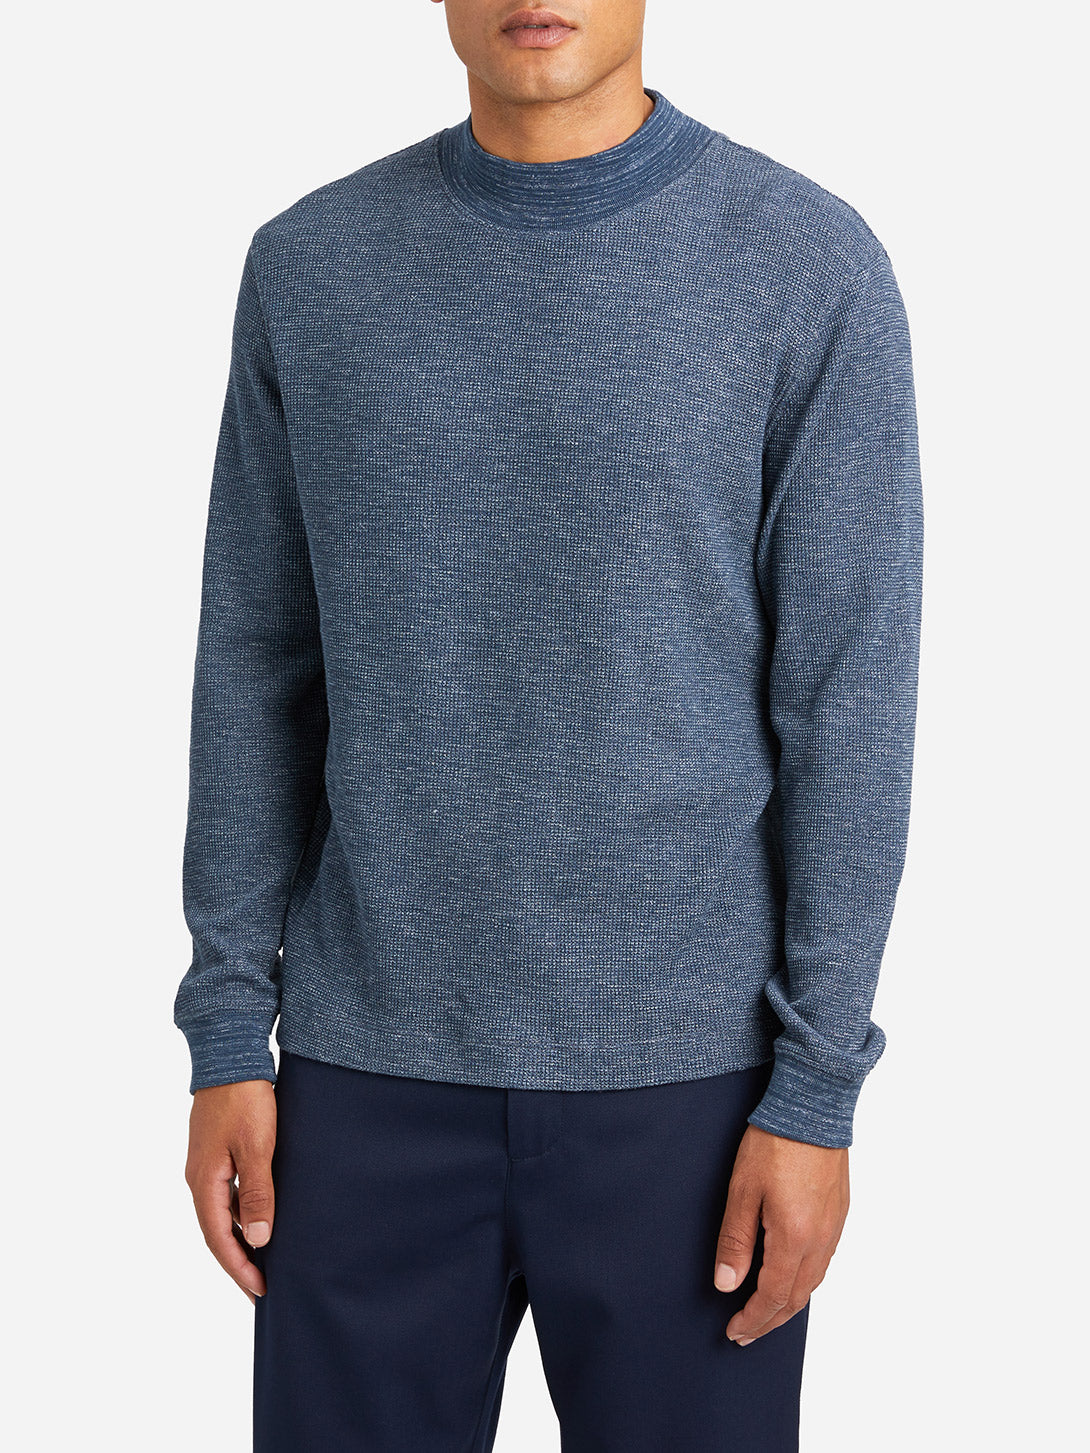 BLUE mens long sleeve t shirts gilman crew ons clothing